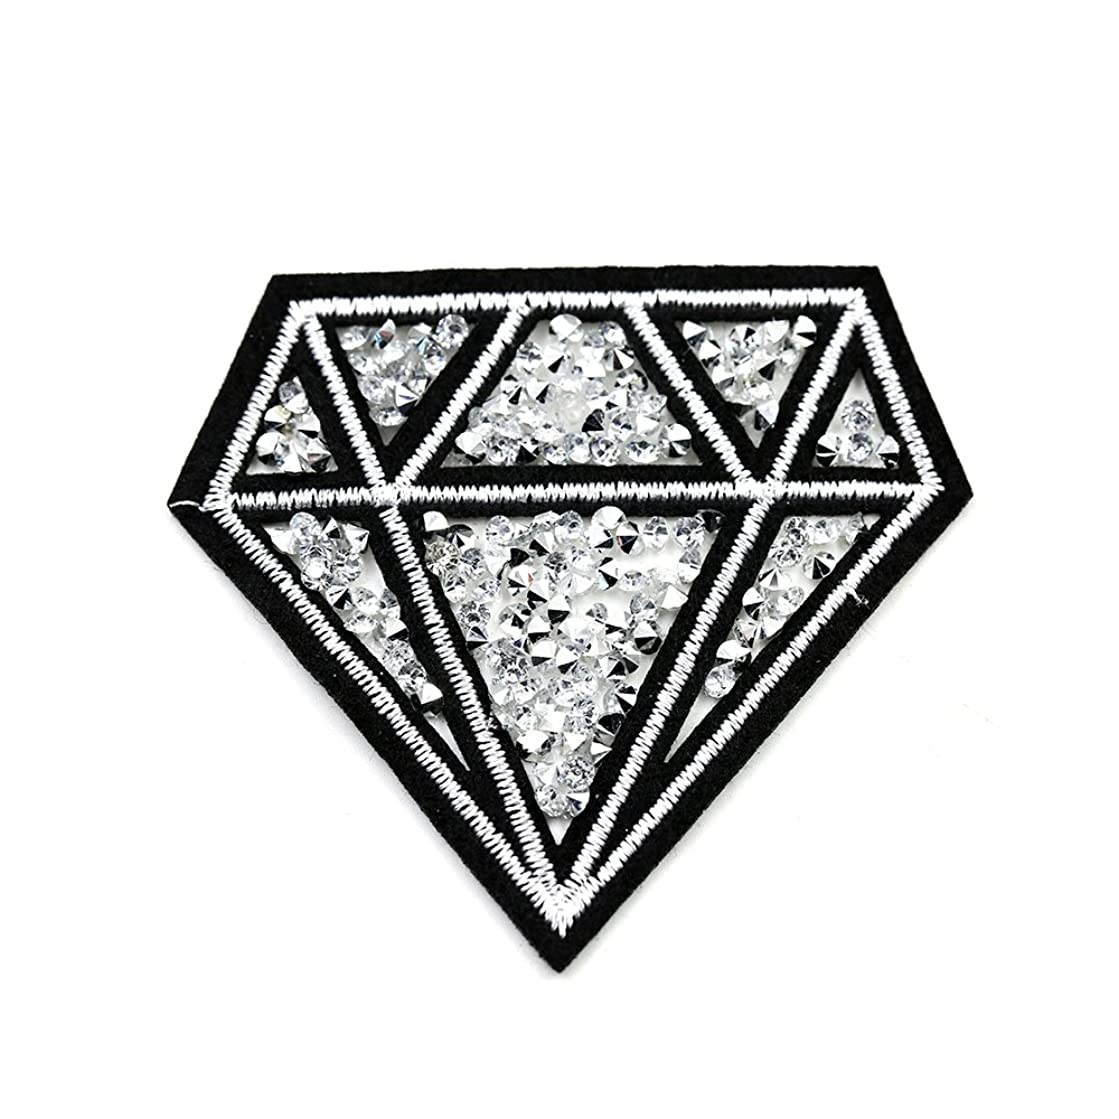 Riverbyland Iron On Patches with Hot Fix Rhinestone Diamond Pack of 5